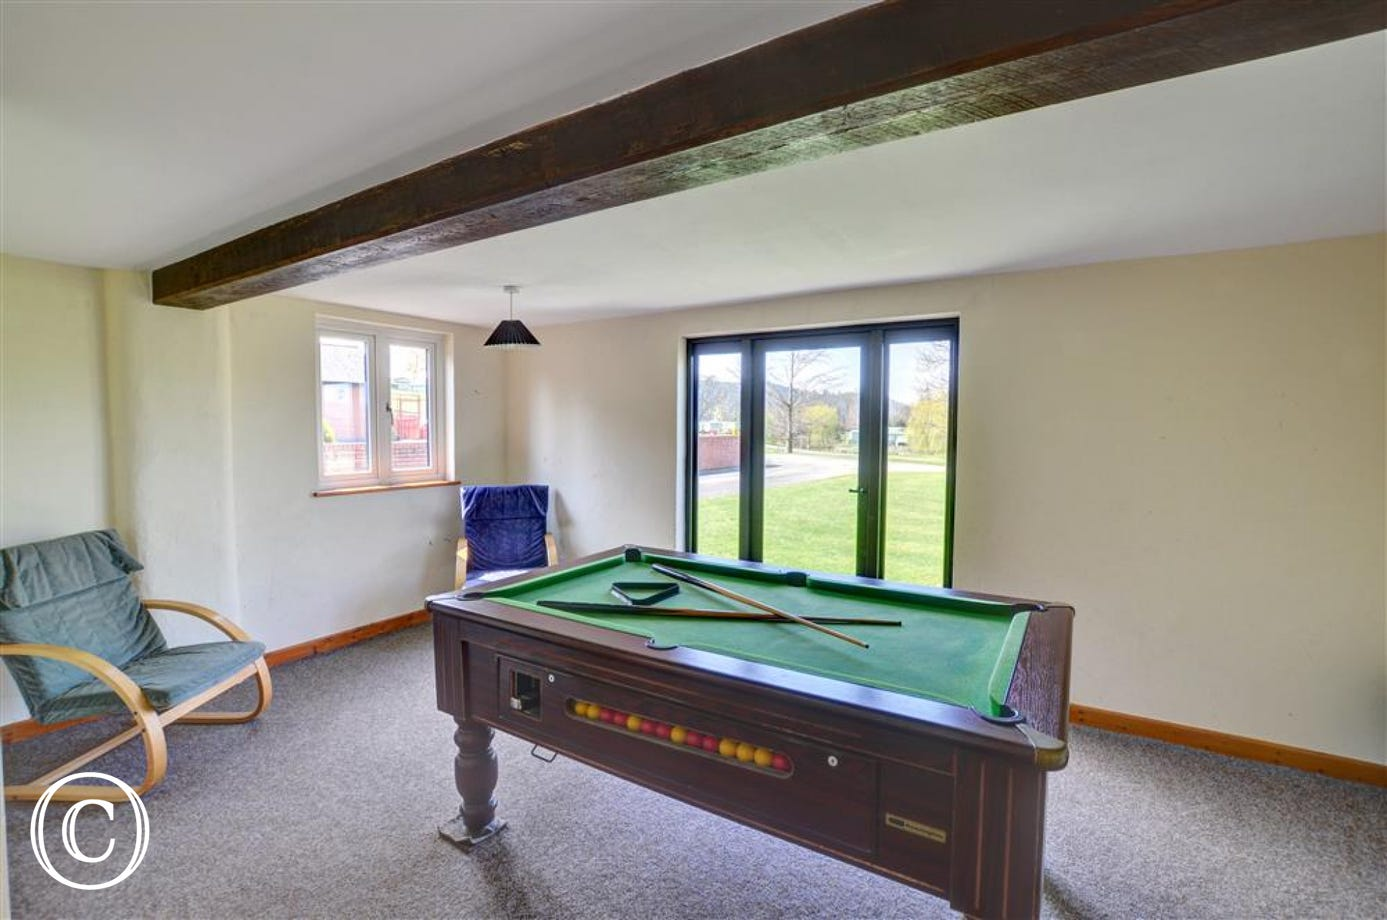 Gellidywyll - Shared Games Room View 1